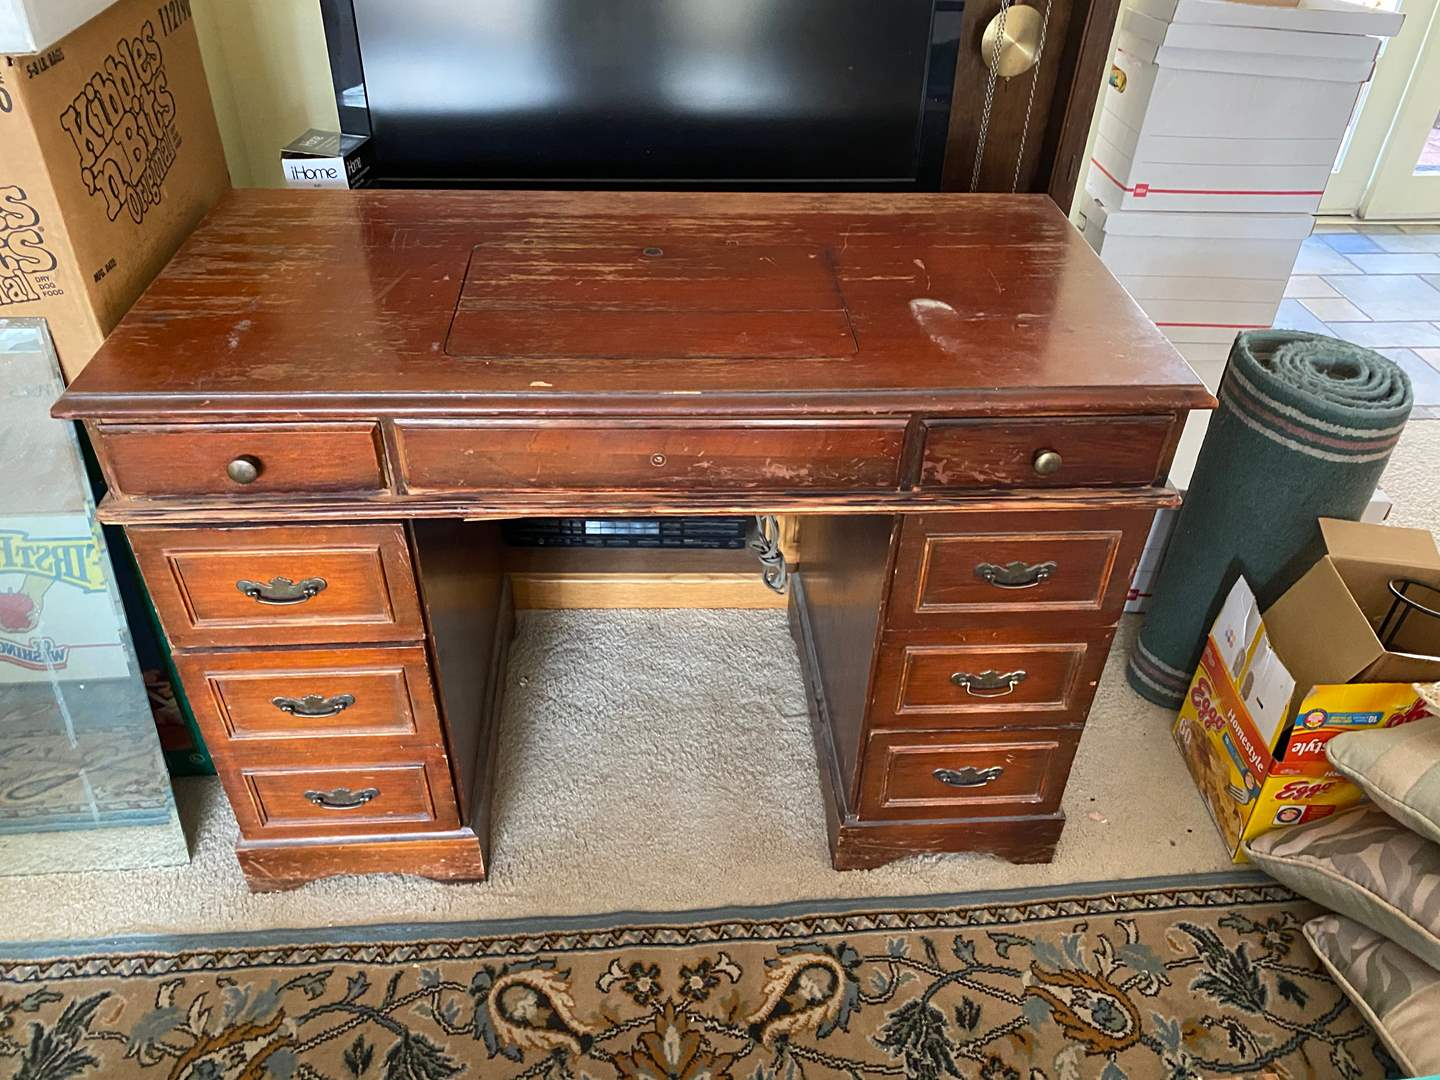 Lot # 106 - SINGER SEWING MACHINE IN CABINET (main image)